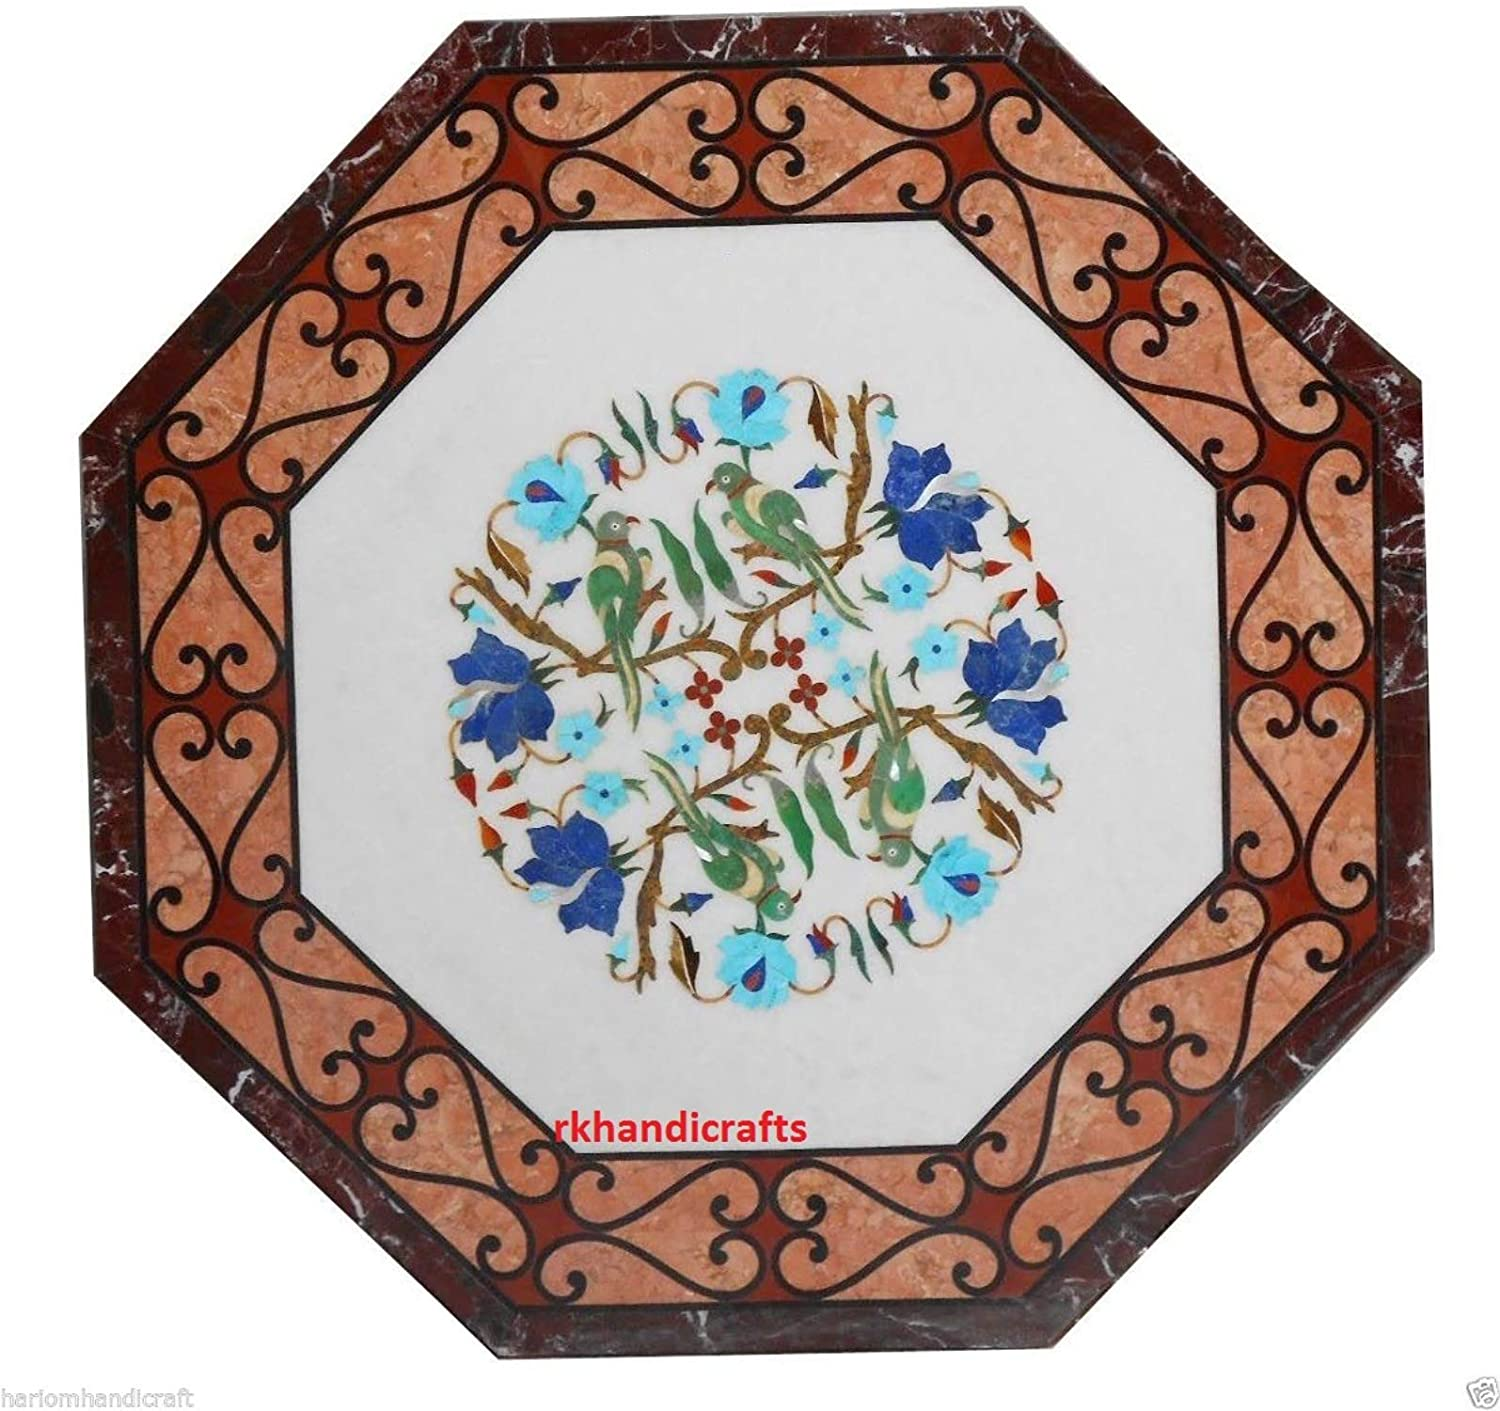 30 Inches Octagon White Marble Patio Dining Table Top Made Beautiful Parrot Design with Multi Colors Stones, Handmade in India 71O-fsJ4dHLSL1500_